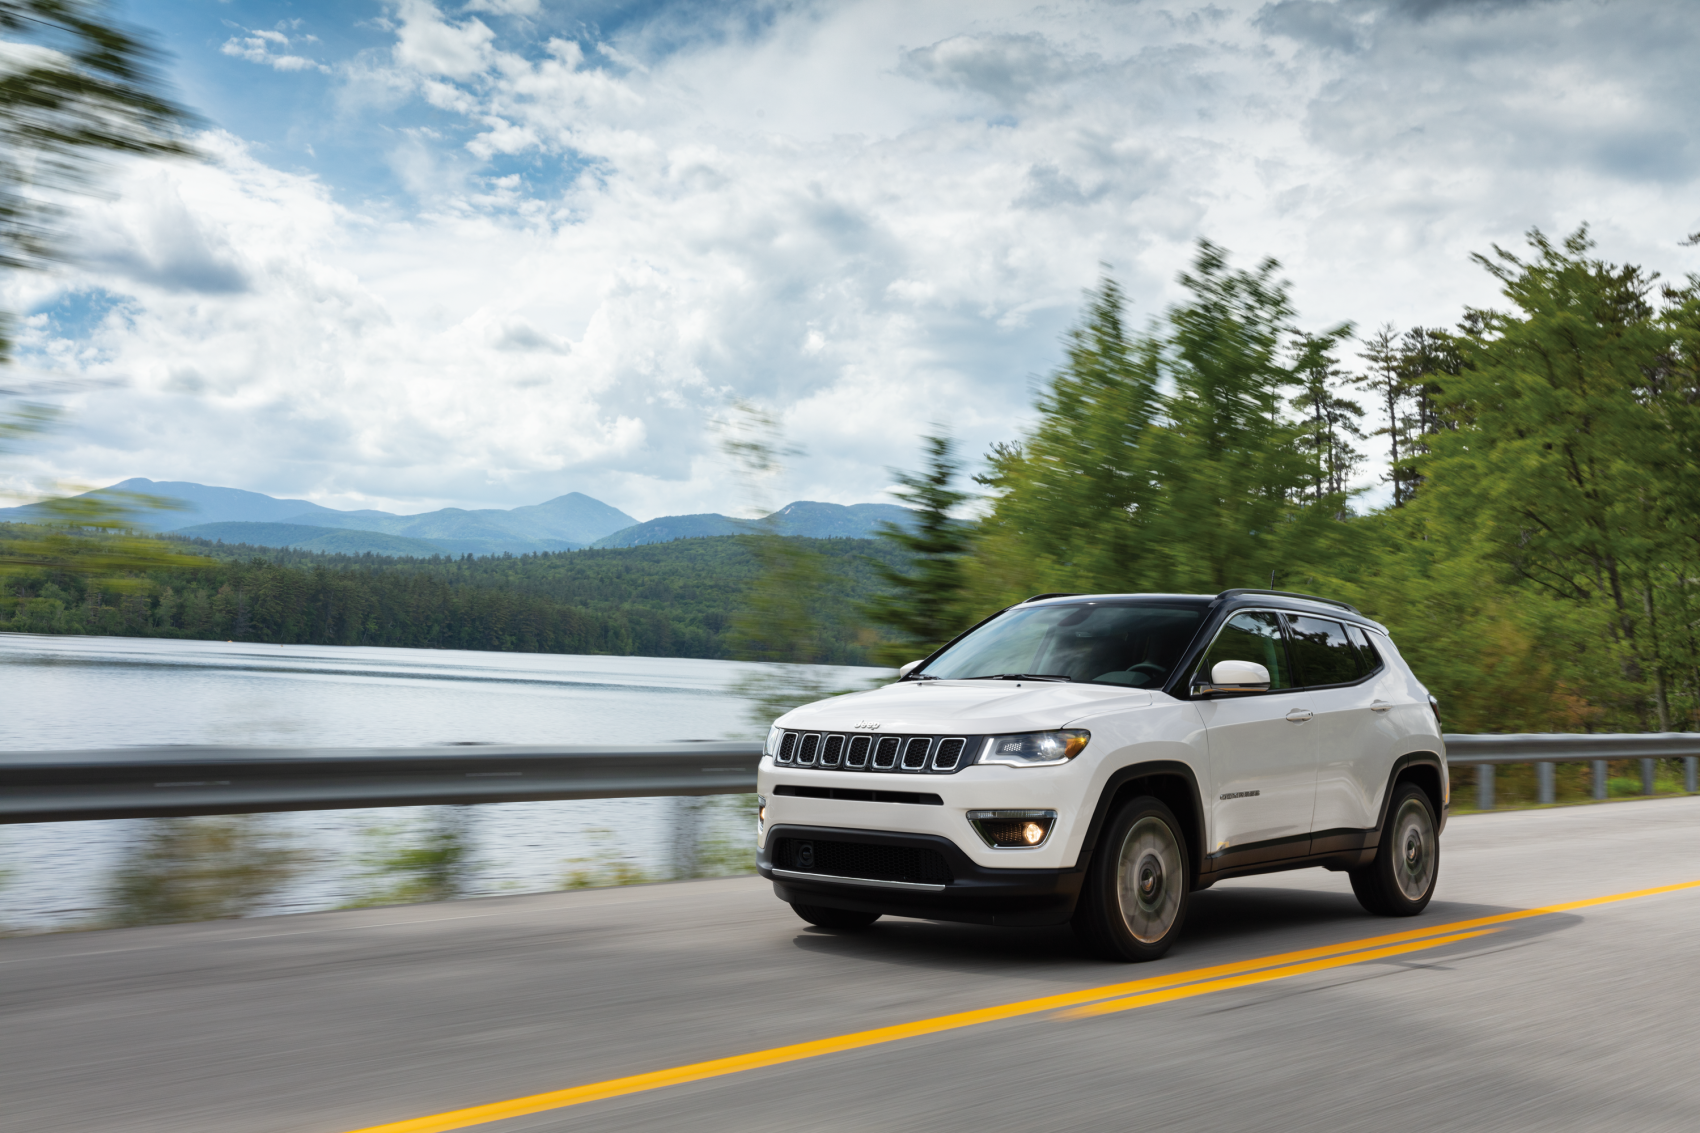 2021 Jeep Compass Limited Pearl White Mountain Road LaFontaine CDJR of Saline